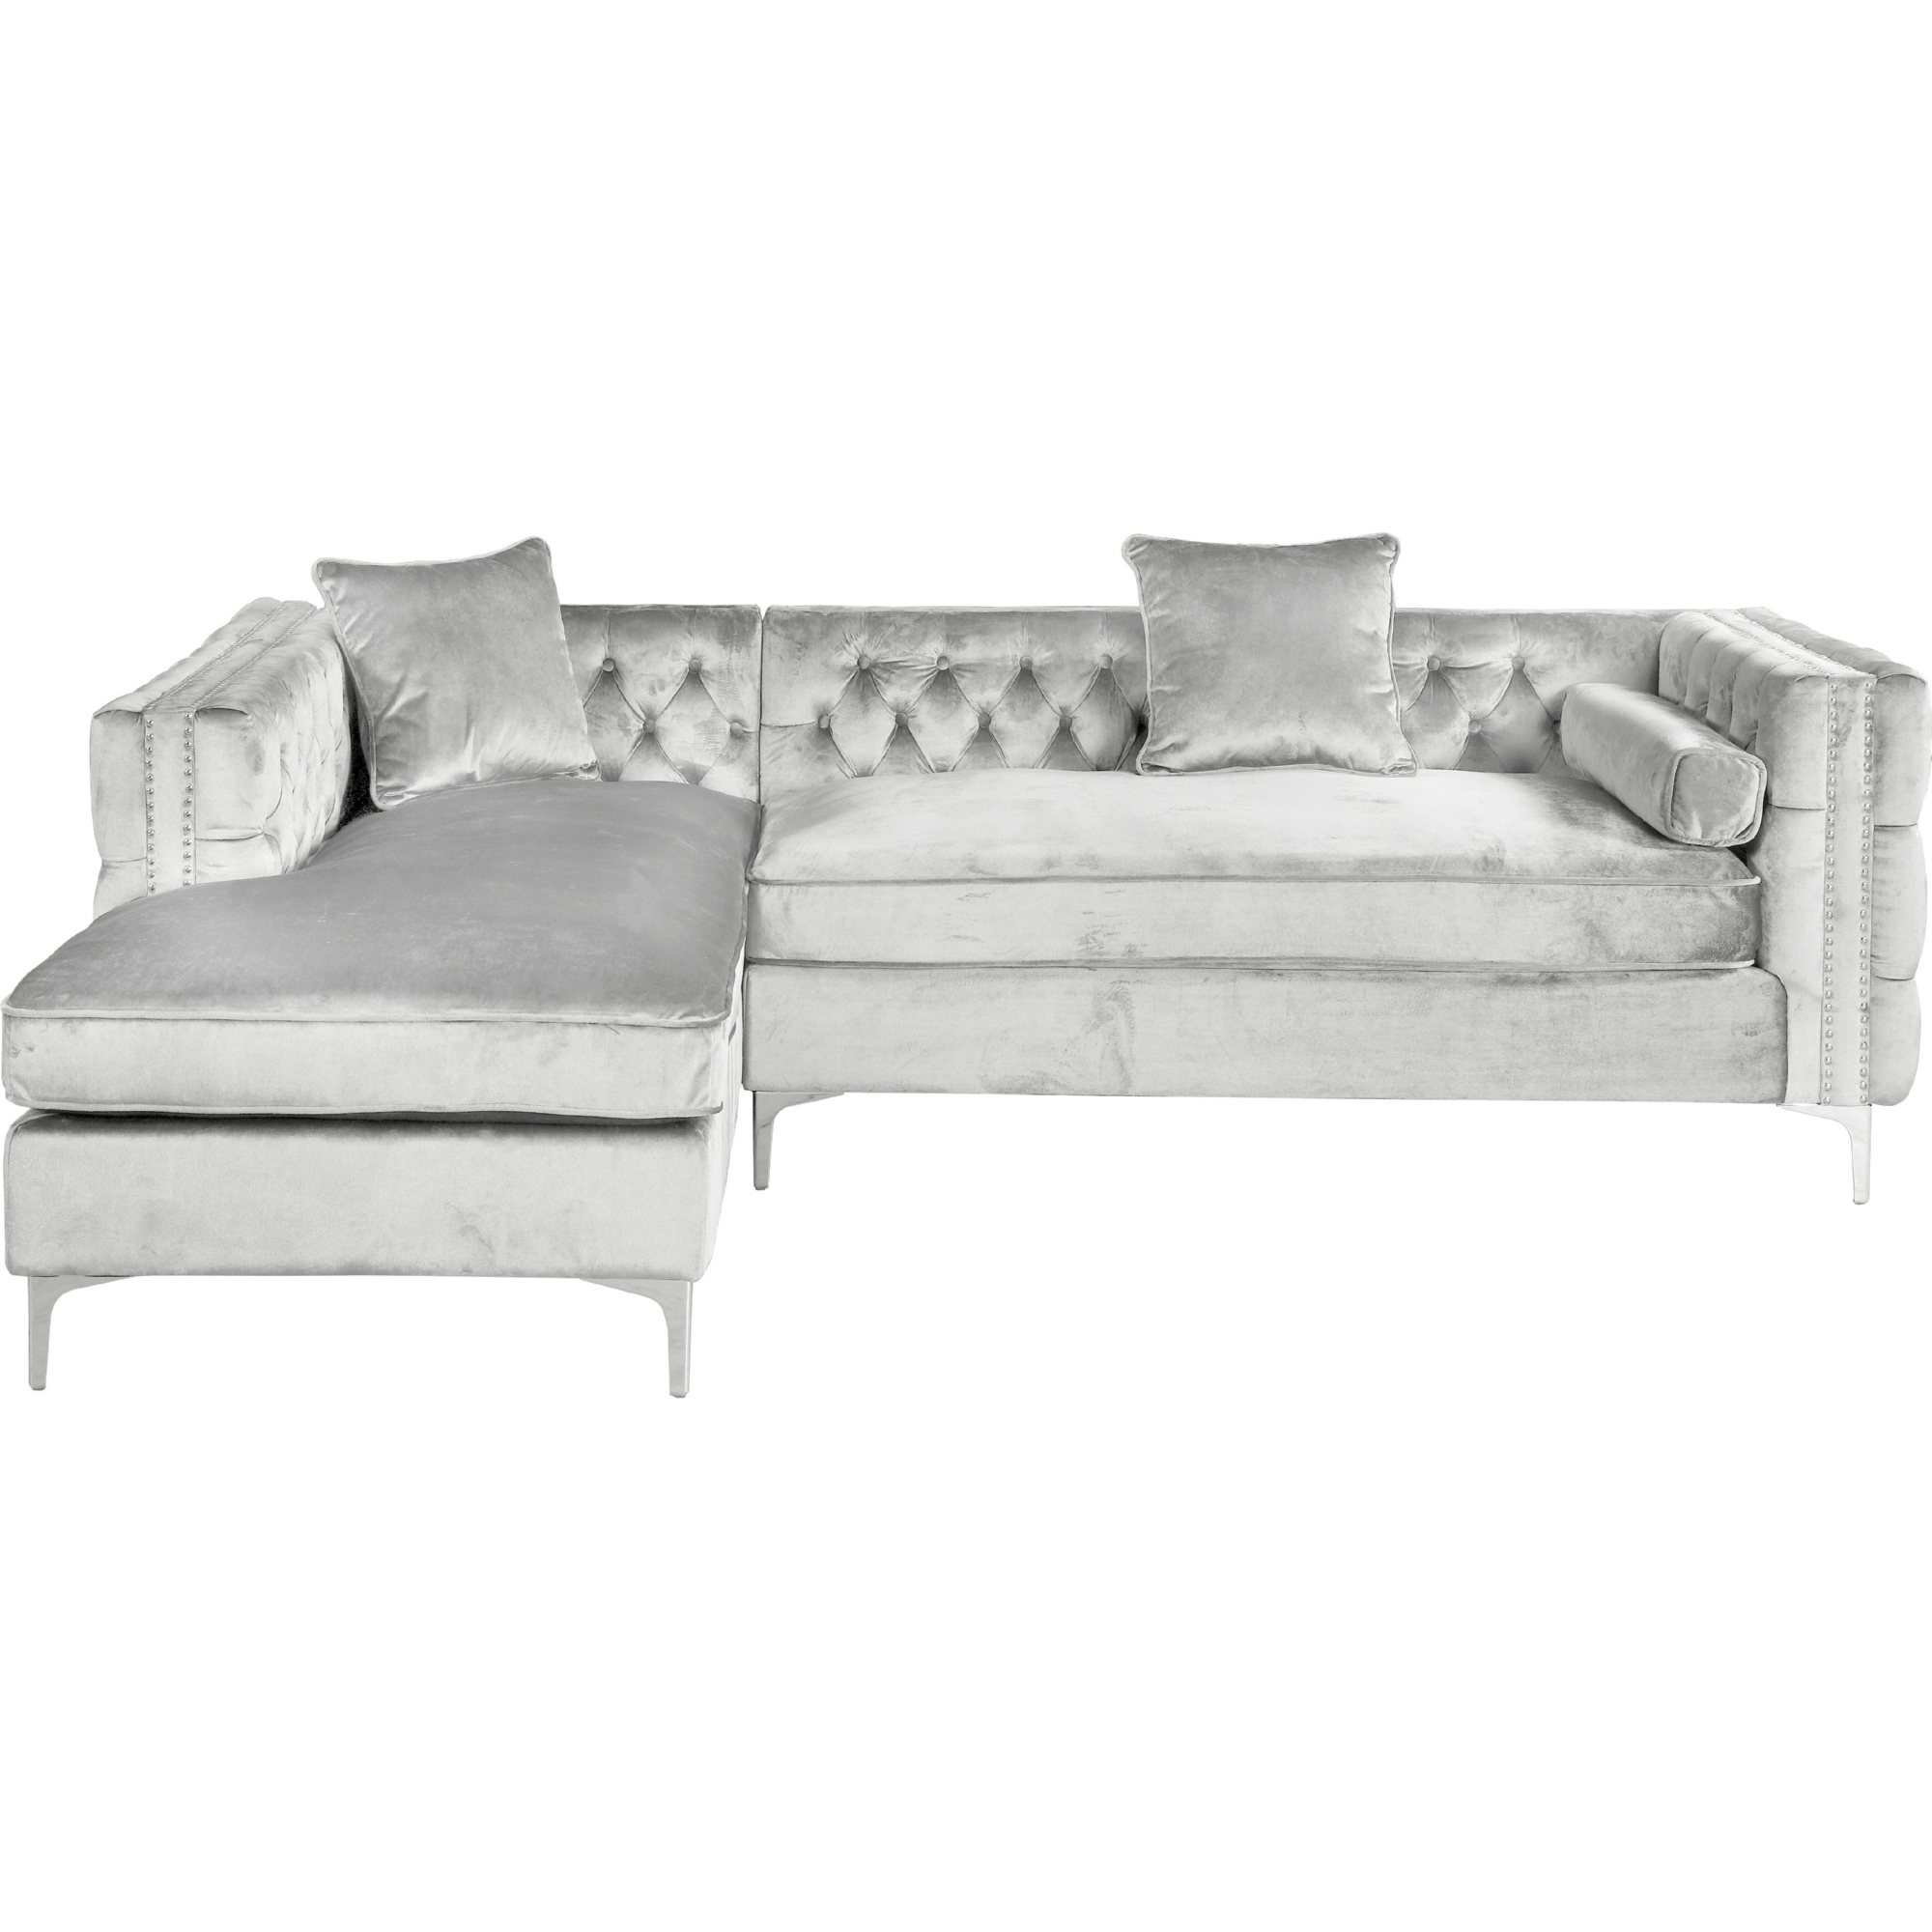 Da Vinci Sectional Sofa W Left Chaise In Tufted Silver Velvet Nailhead Trim On Metal Leg By Chic Home